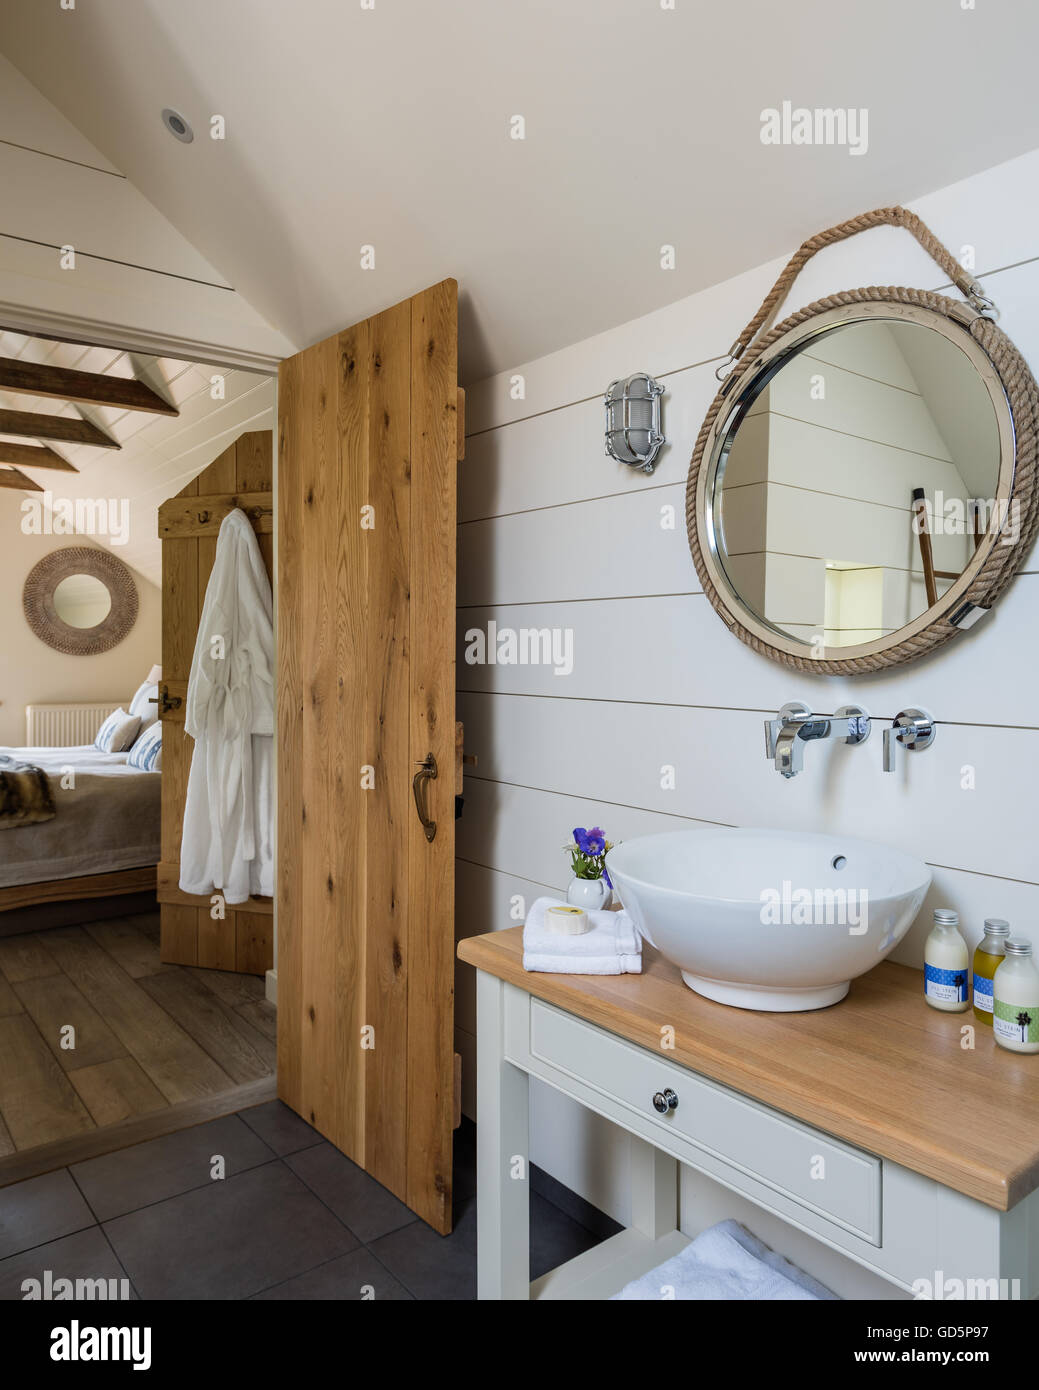 Painted white wooden planks and nautical style mirror in ensuite bathroom - Stock Image